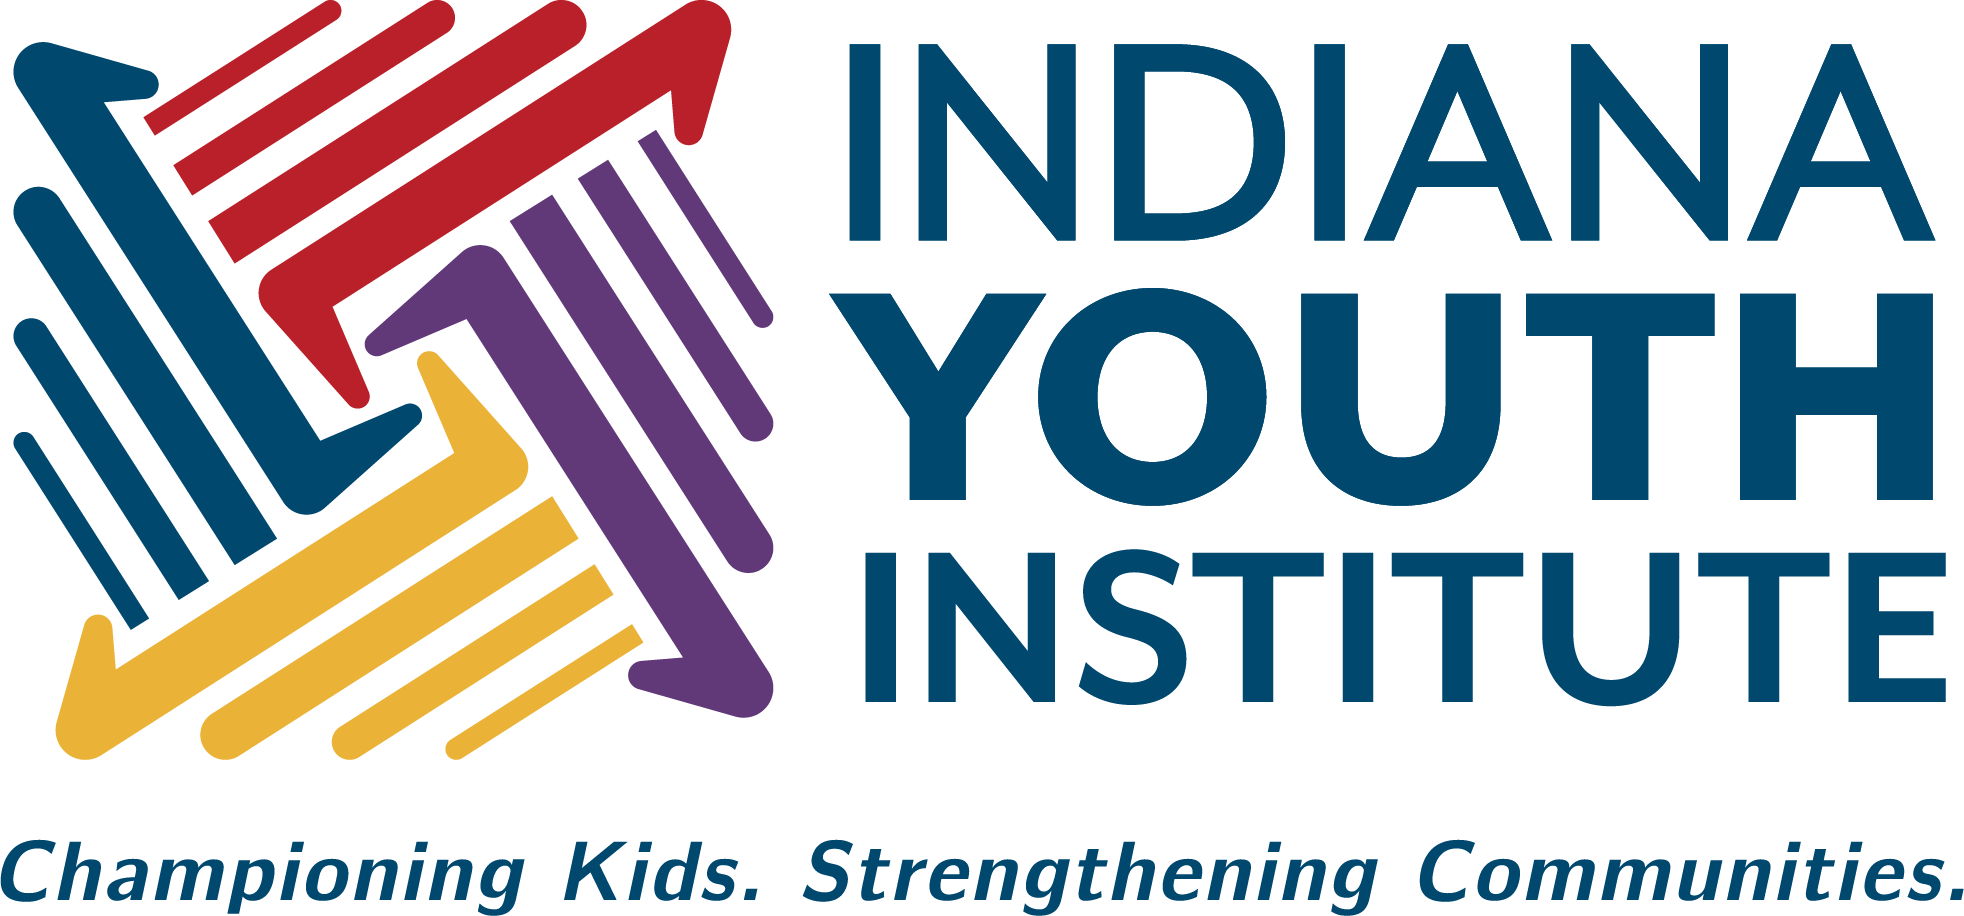 Promise Indiana/Indiana Youth Institute